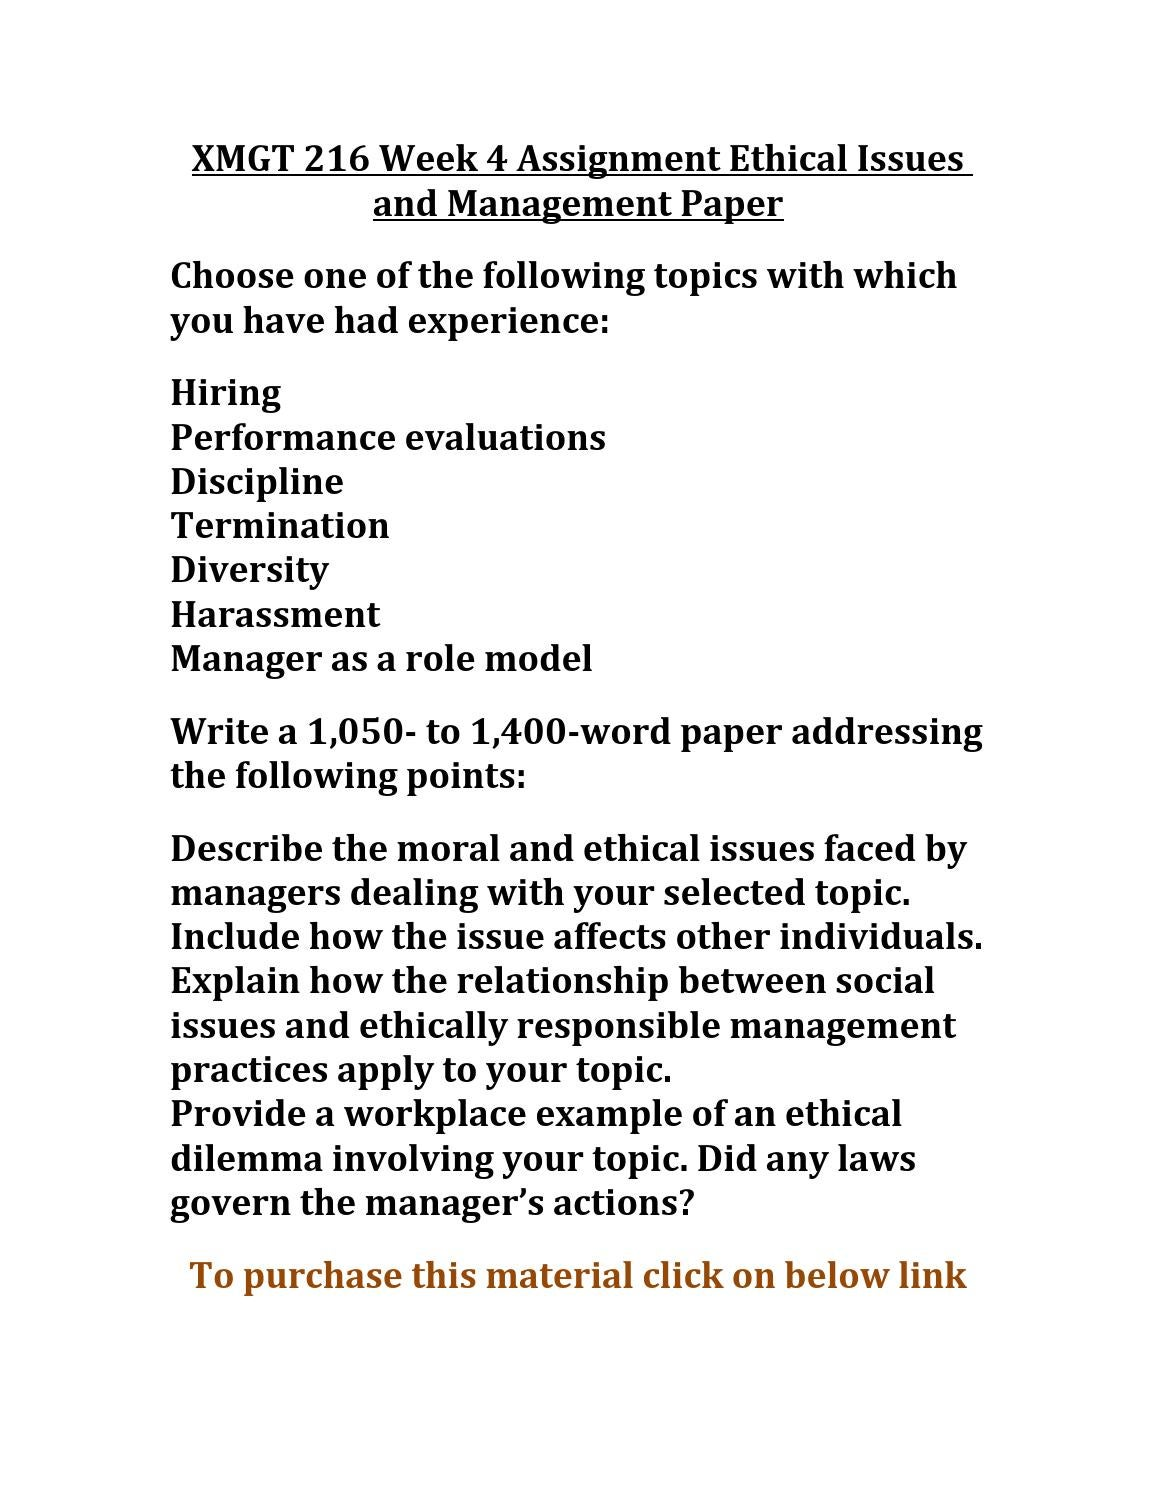 ethical issues in management ppt